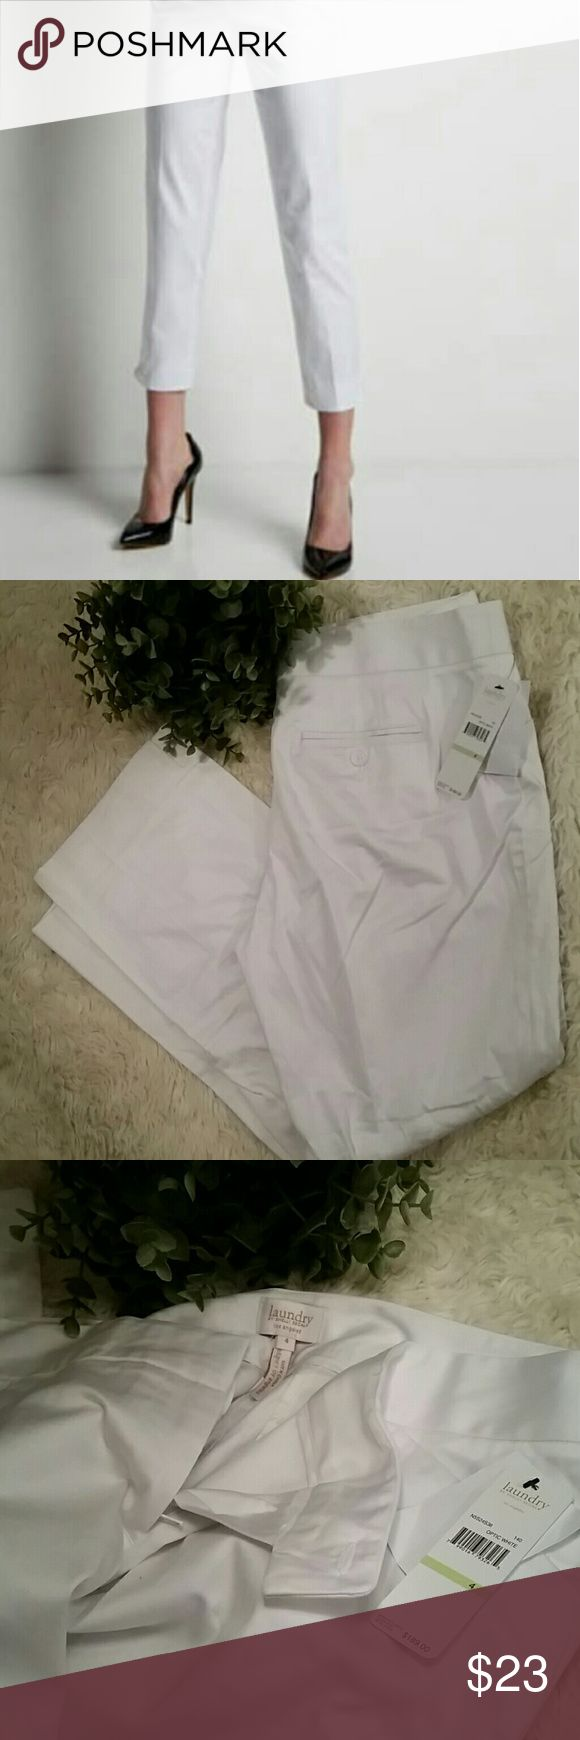 LAUNDRY SHELLI SEGAL / NWT Nordstrom white capri NWT  LAUNDRY by Shelli Segal Size 4 but could fit a 6 too From Nordstrom  Straight Leg Capri Style They do need to be ironed or steamed :/ Laundry By Shelli Segal Pants Capris